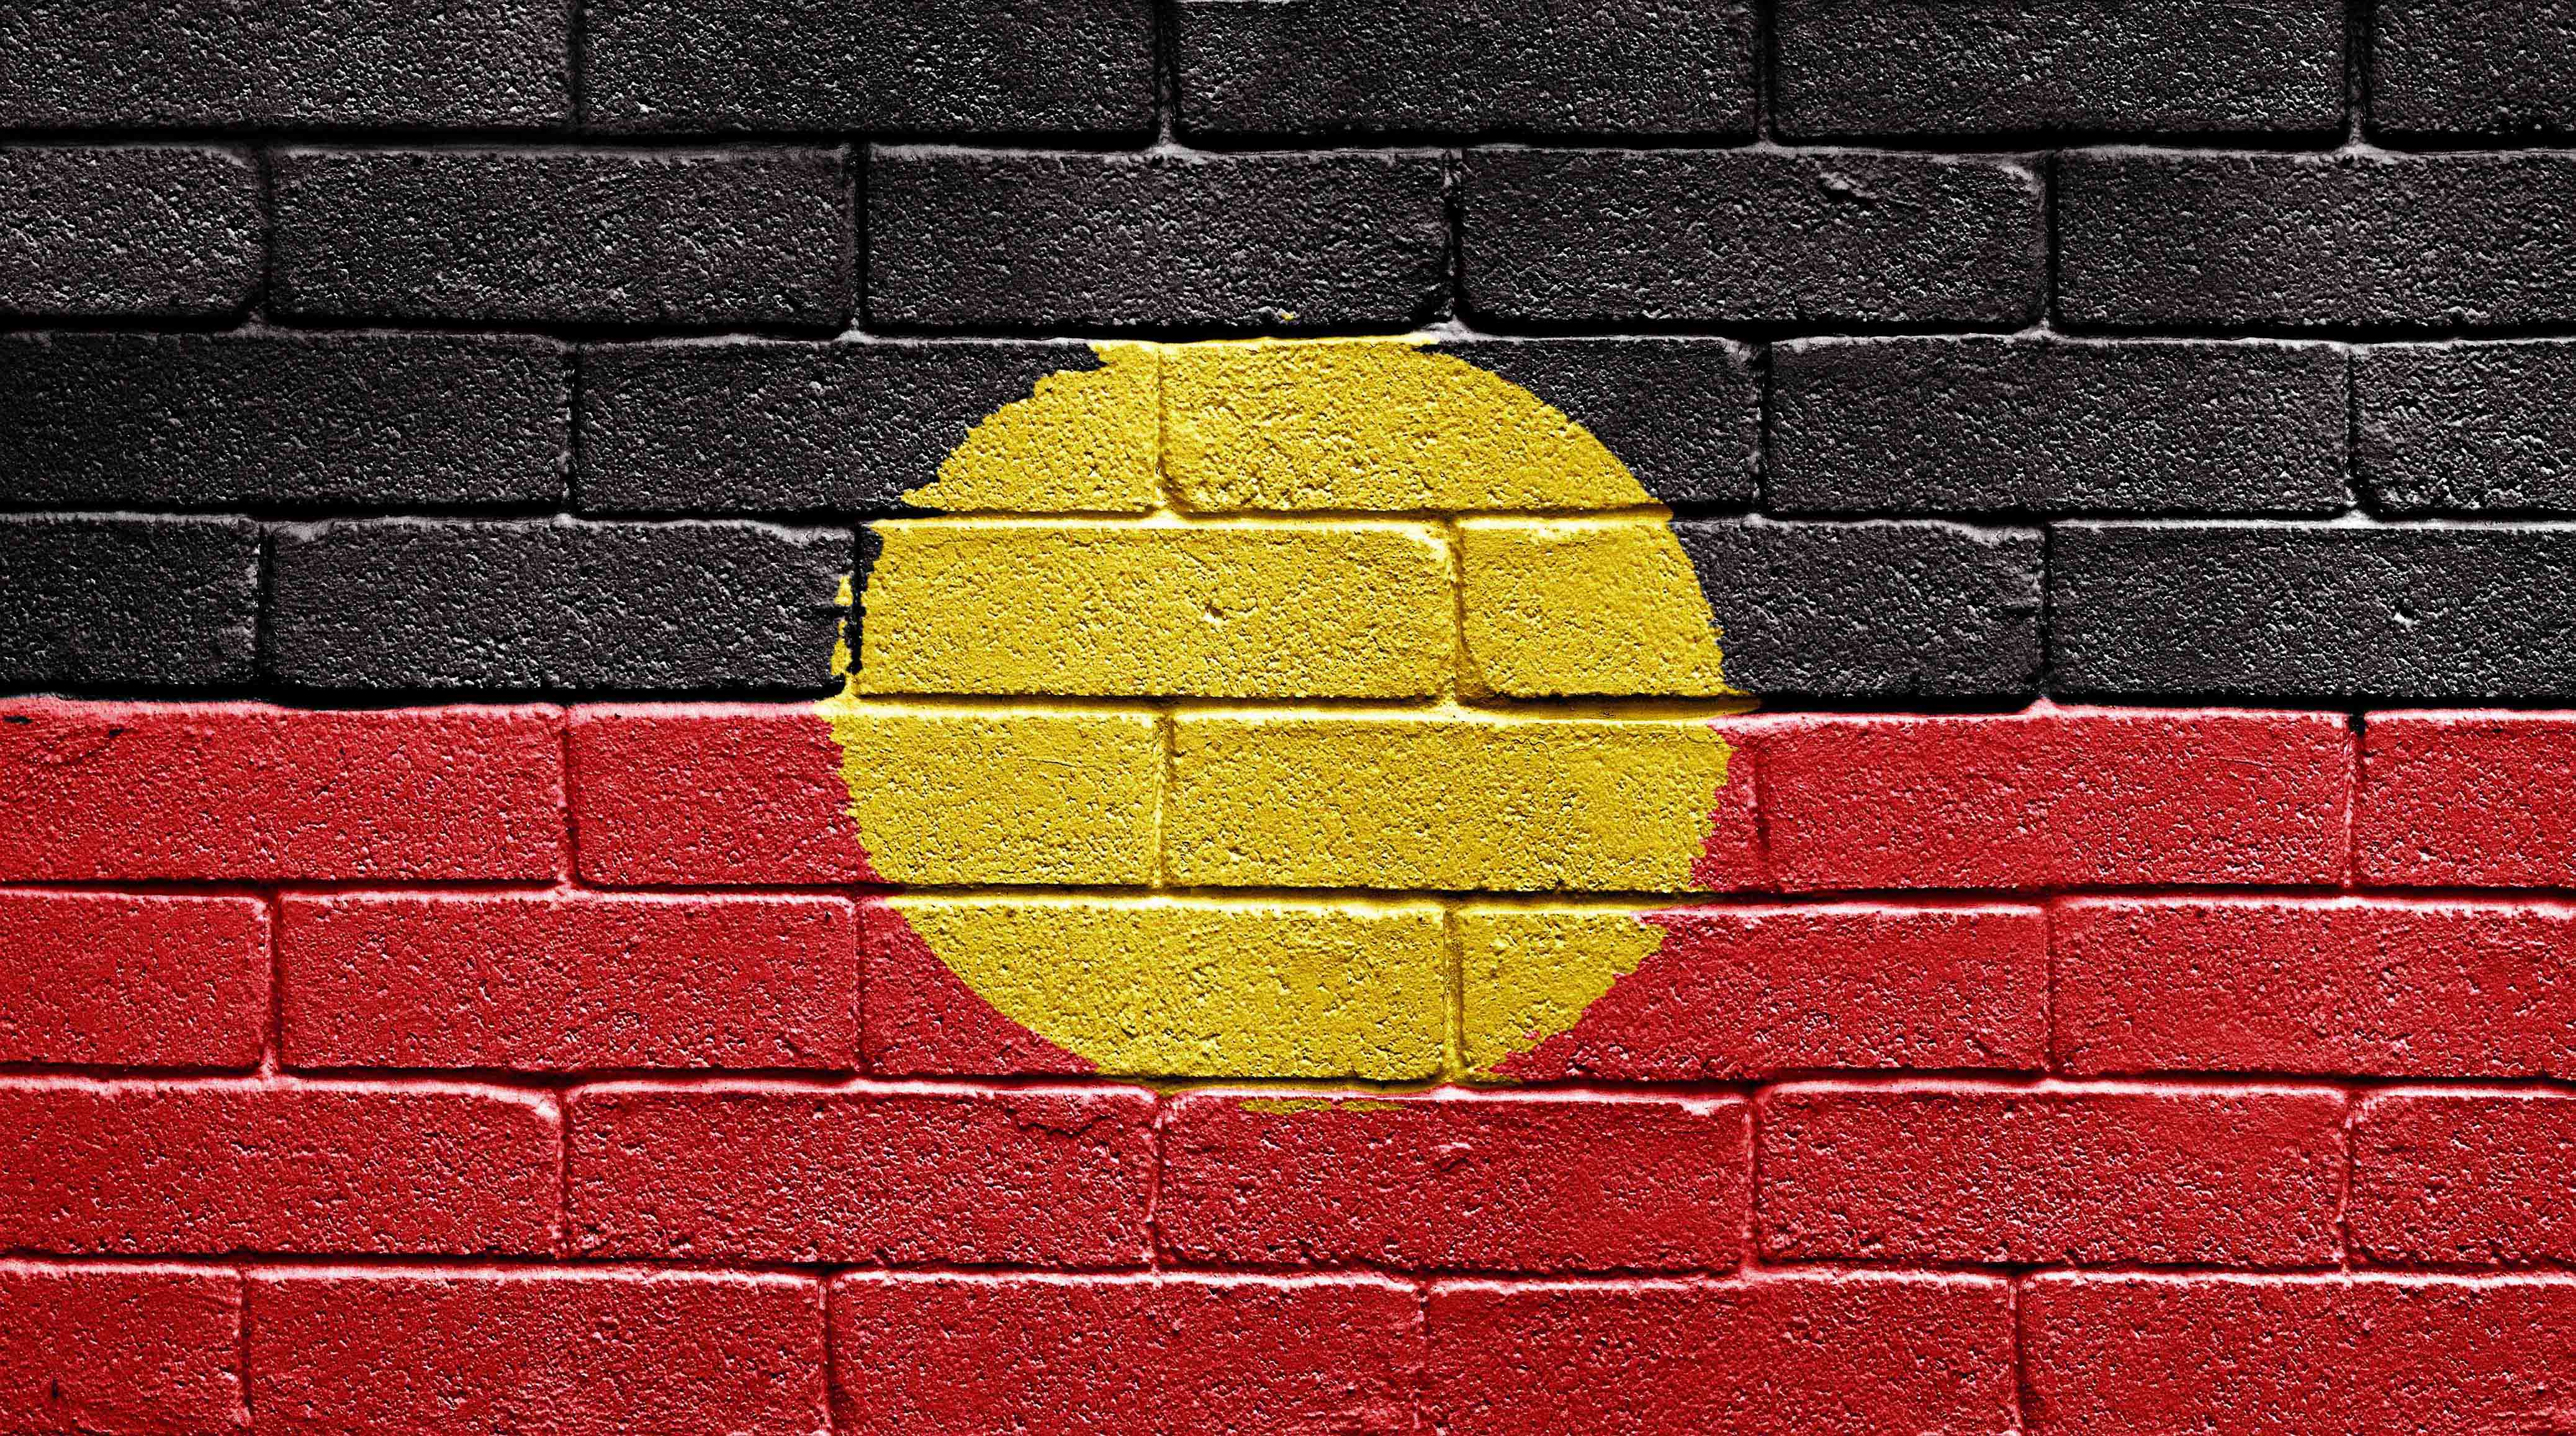 Greens support NSW Aboriginal Land Council's calls for Treaty - Dawn Walker MP